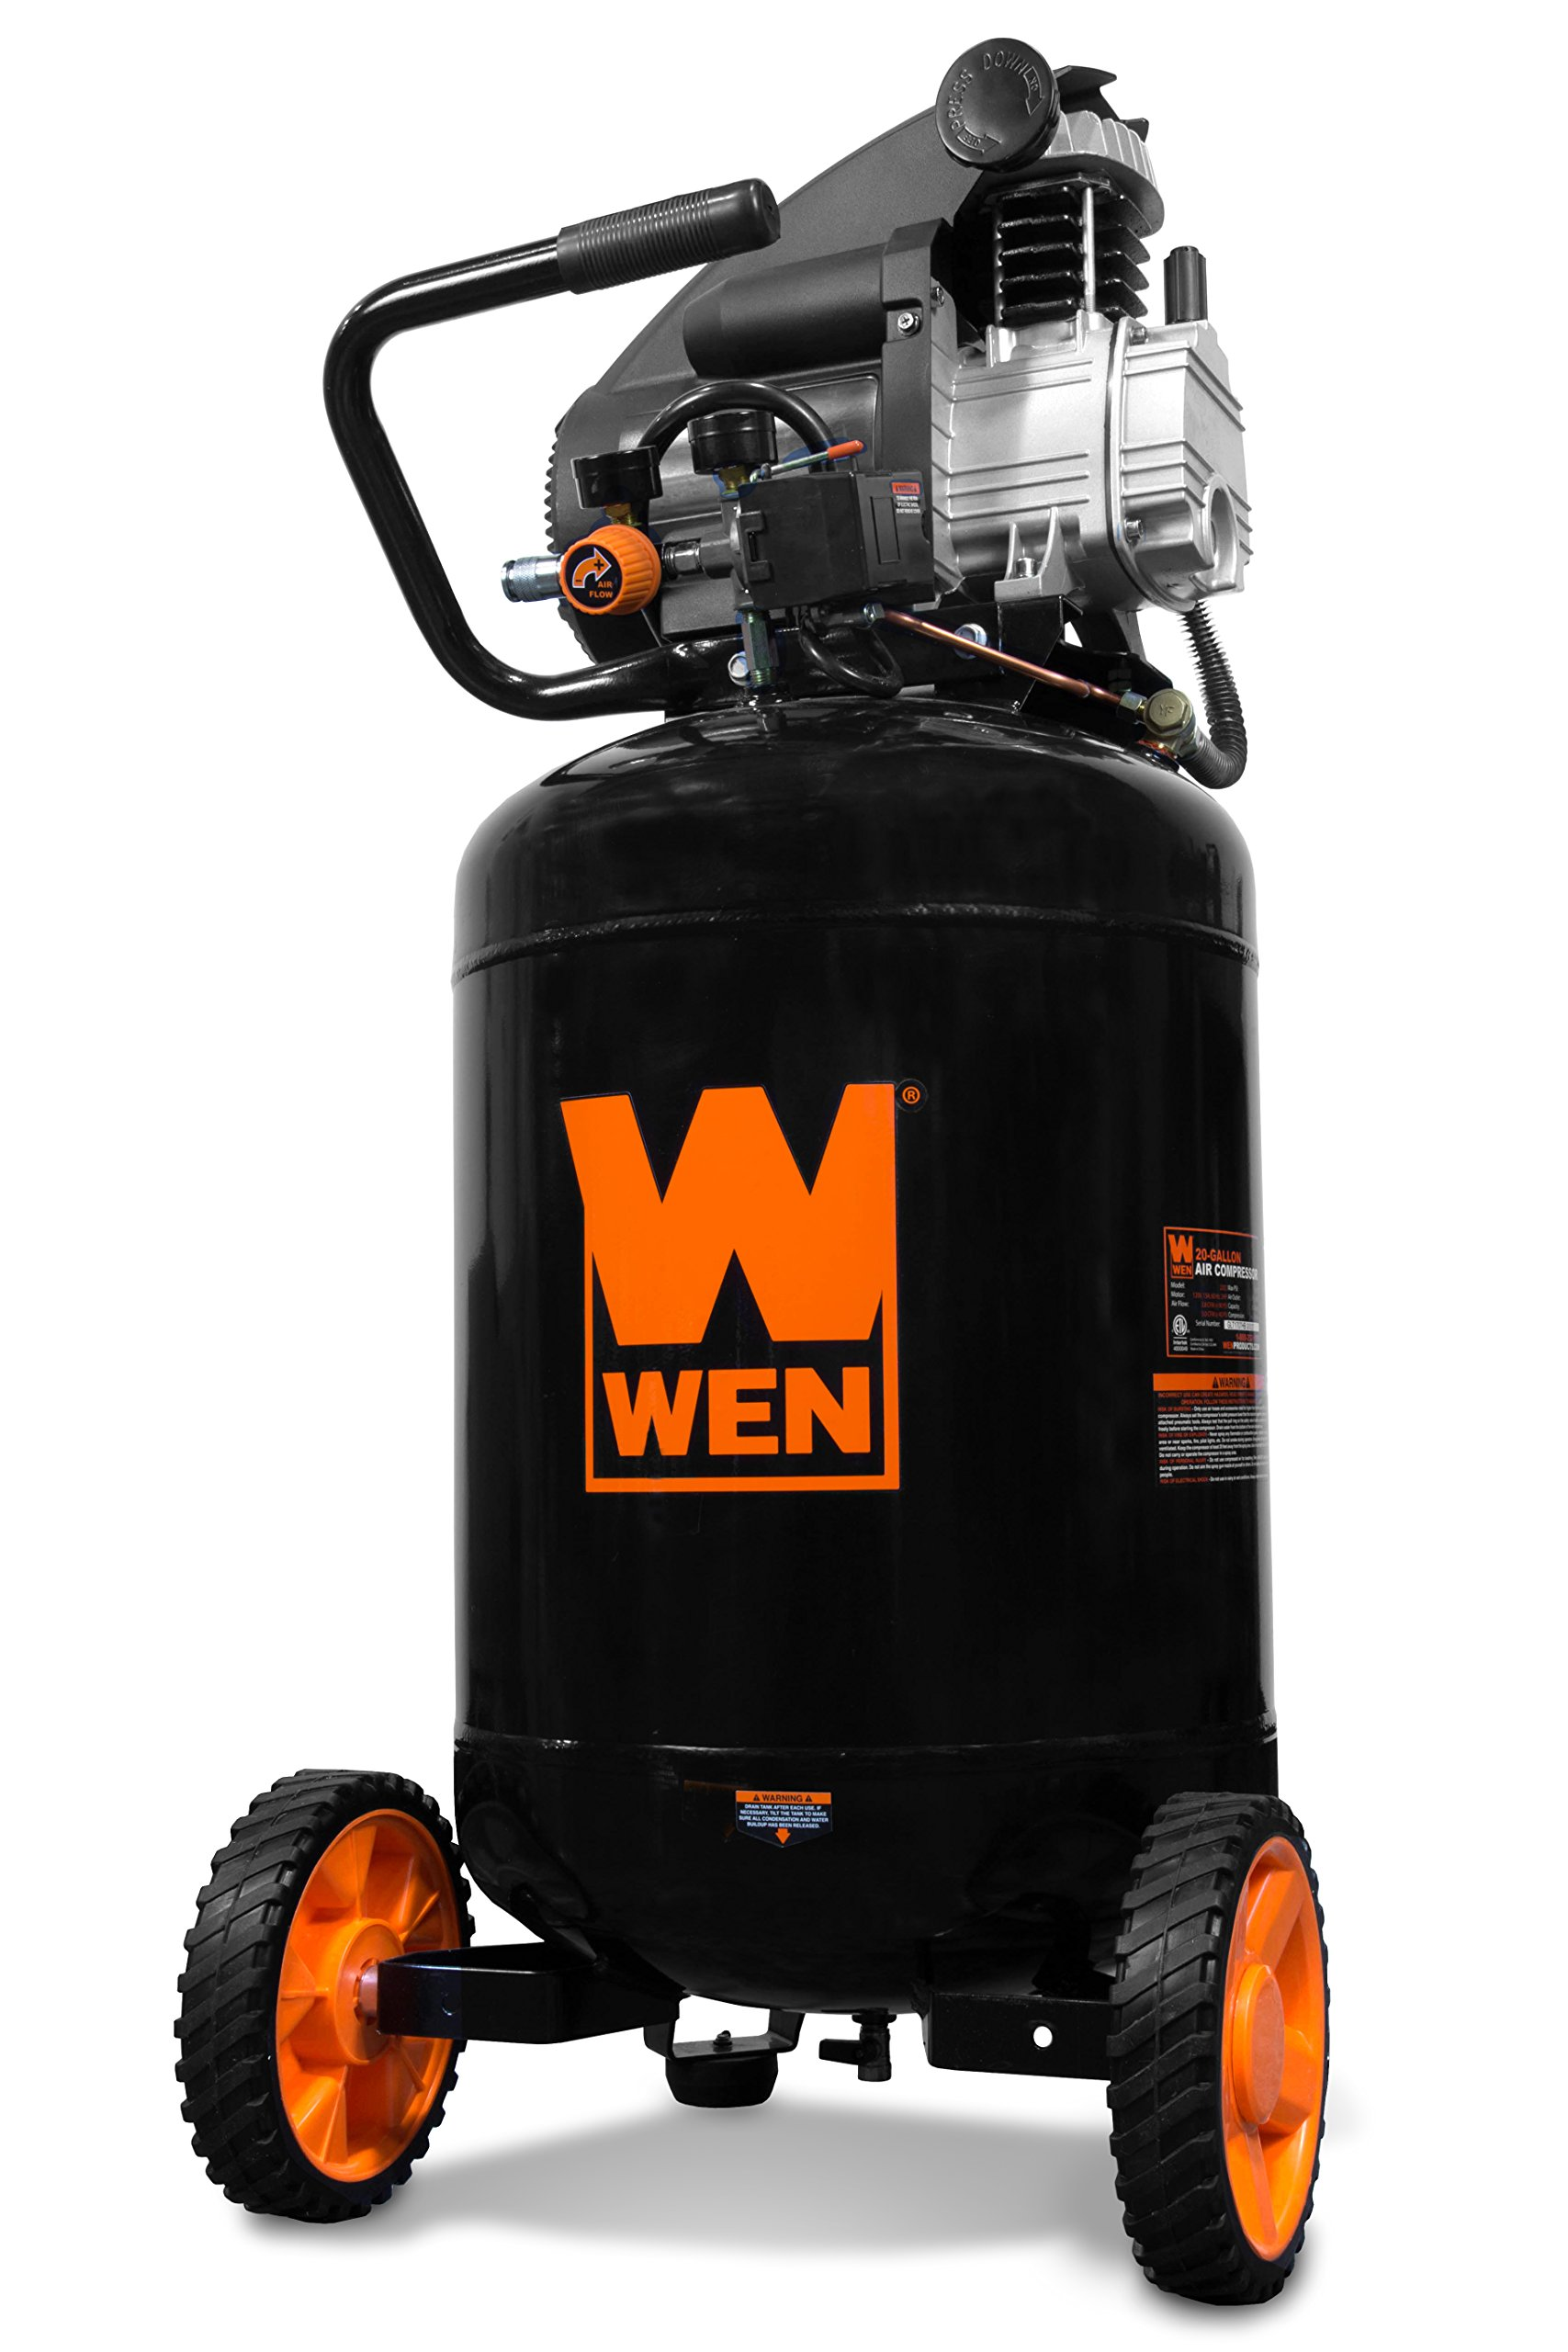 WEN 2202 20-Gallon Oil-Lubricated Portable Vertical Air Compressor by WEN